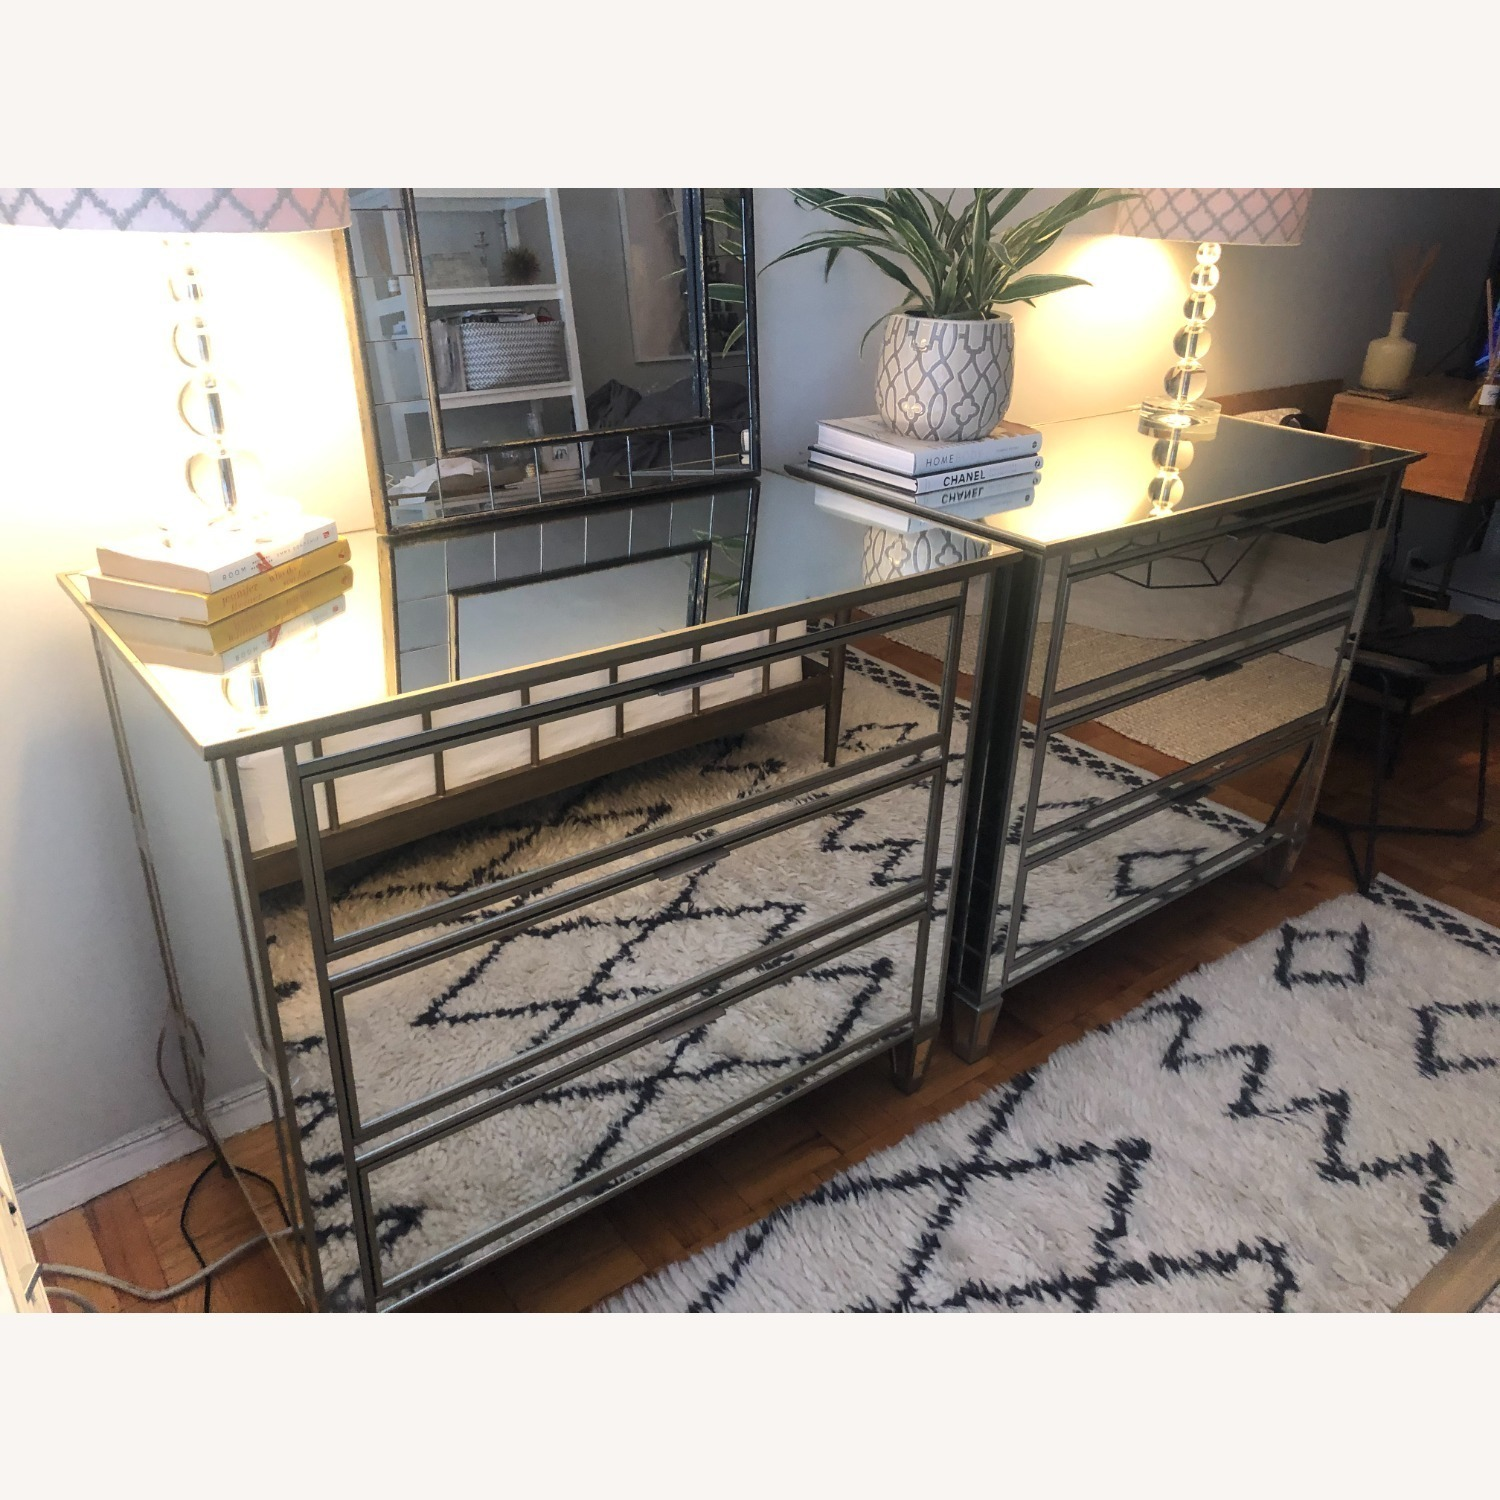 Pottery Barn Parker Mirrored Dressers - image-2